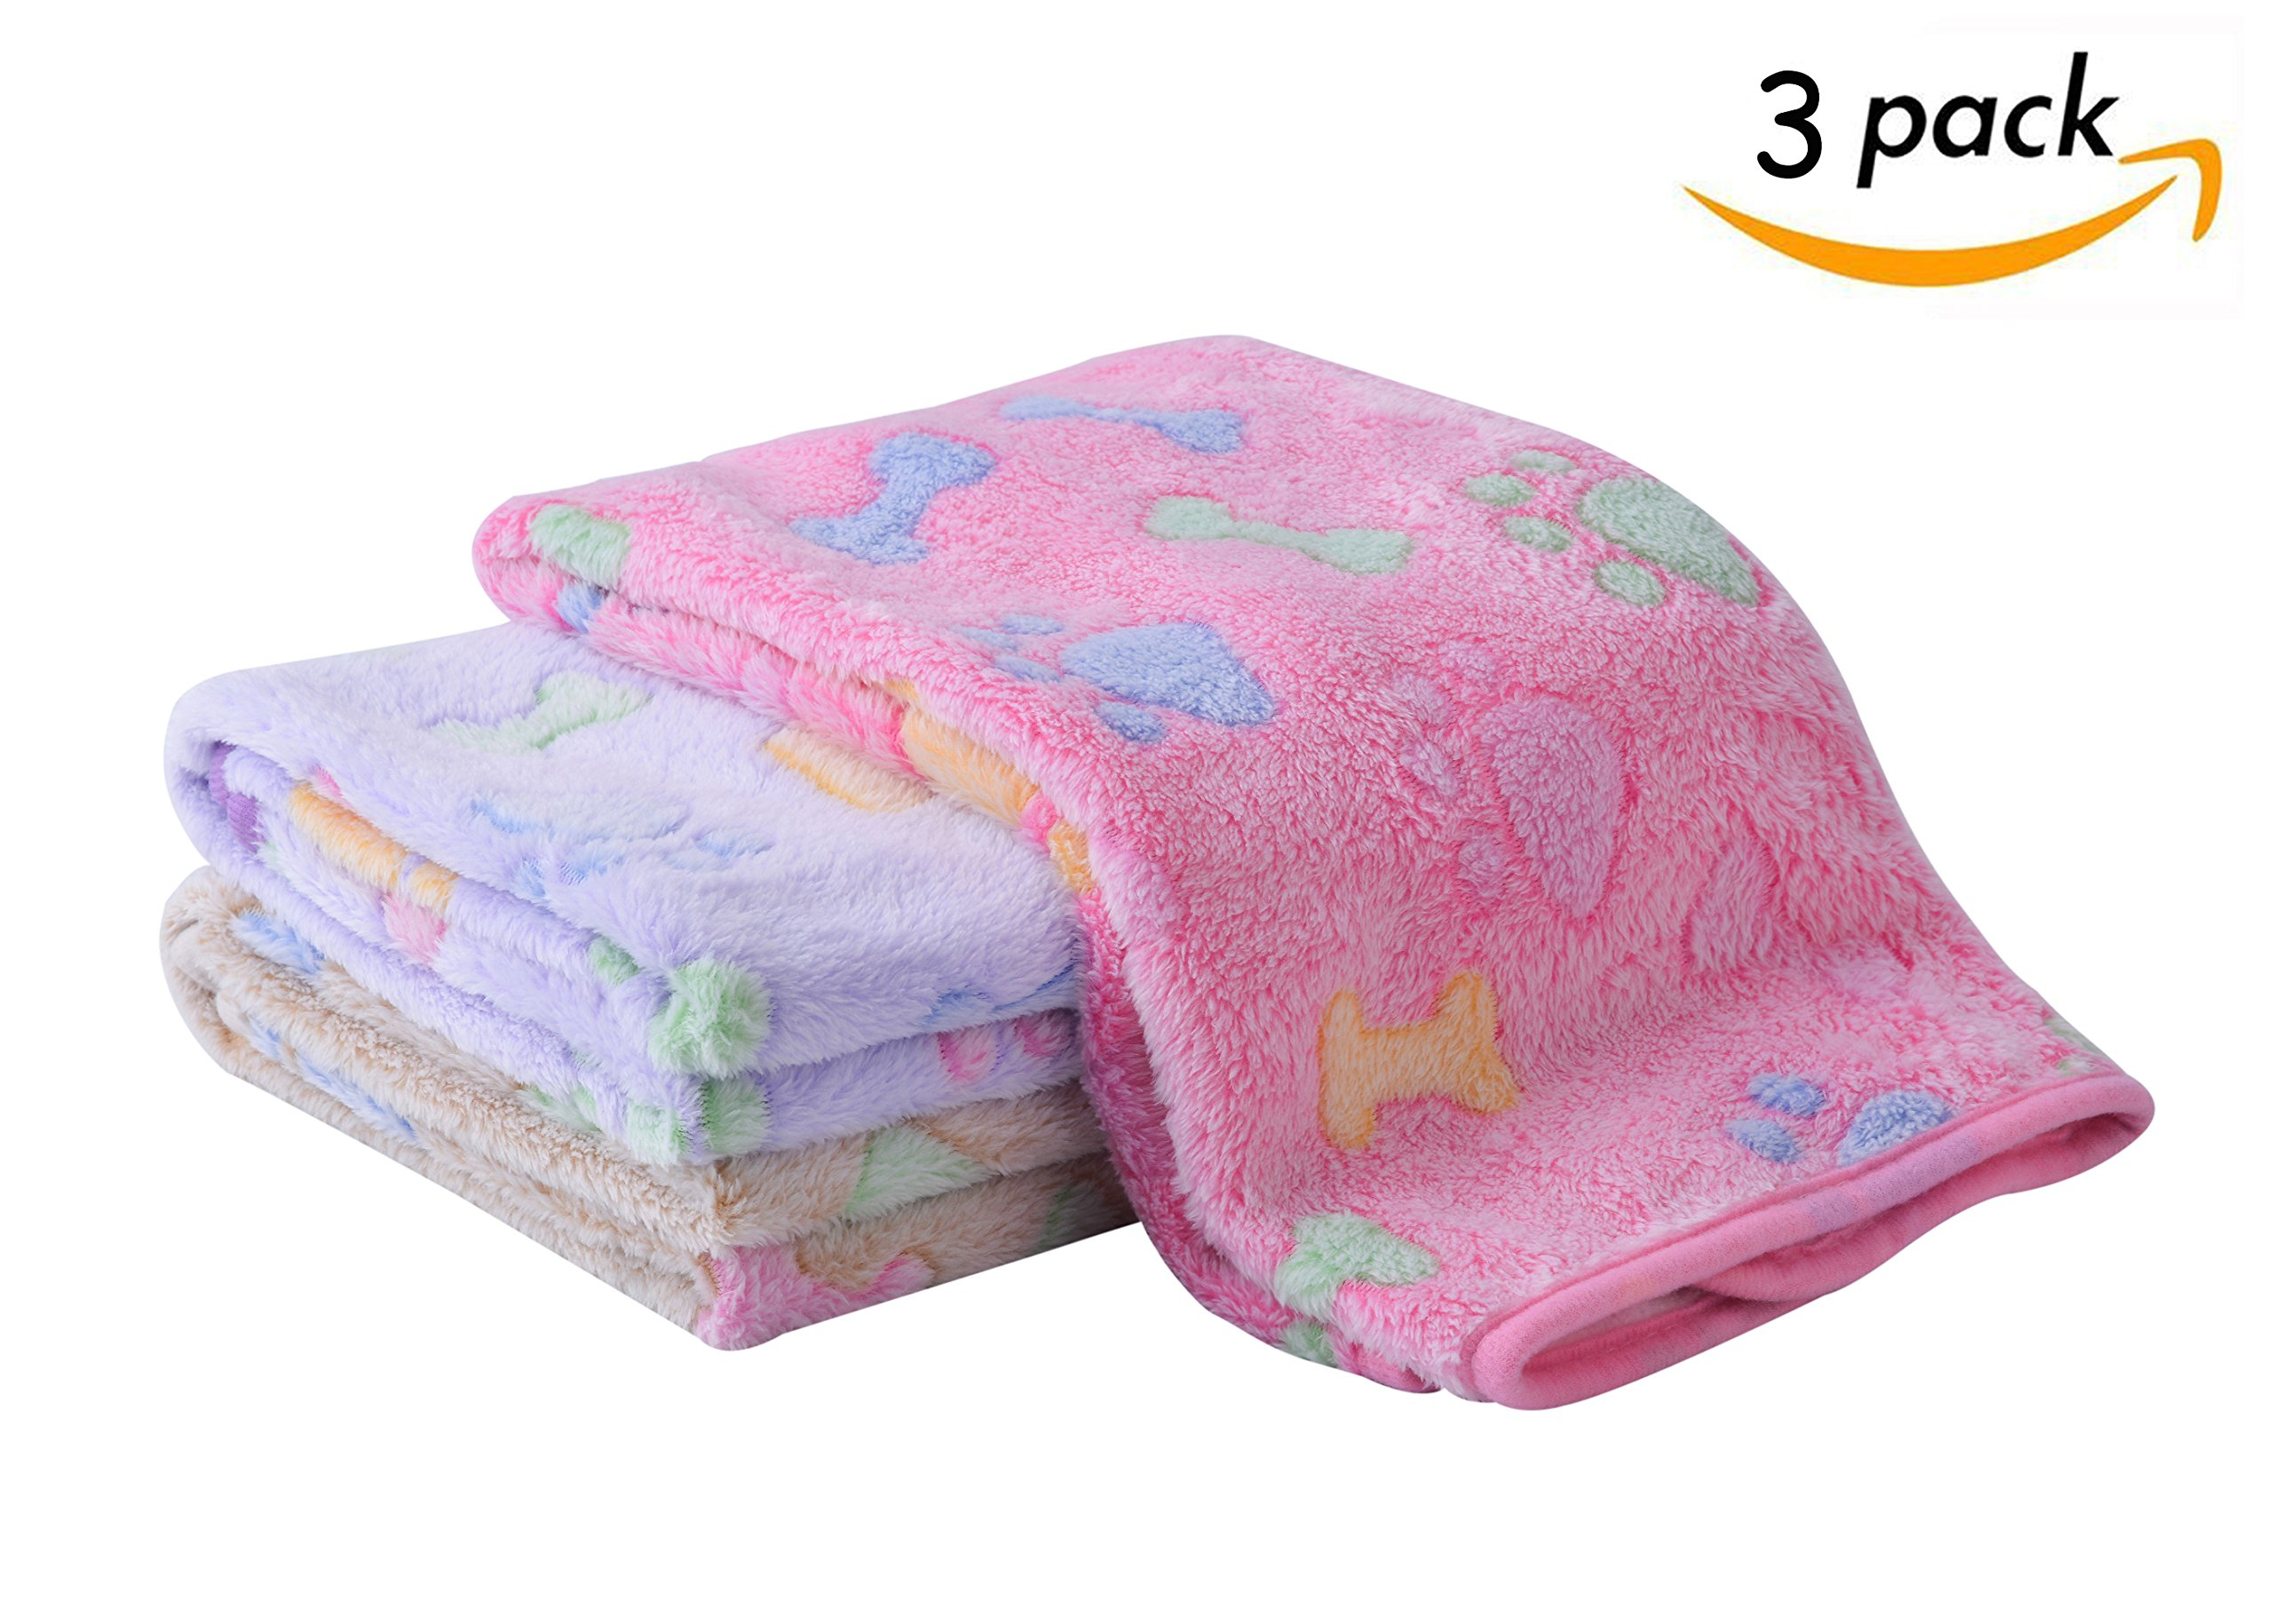 SCENEREAL Fleece Dog Bed Throw Blanket - Best Soft Warm Cute Pet Crate Couch Cover Blankets 3 Pcs/set for Small and Medium Dogs Puppy Cats 19.5'' x 27.5''